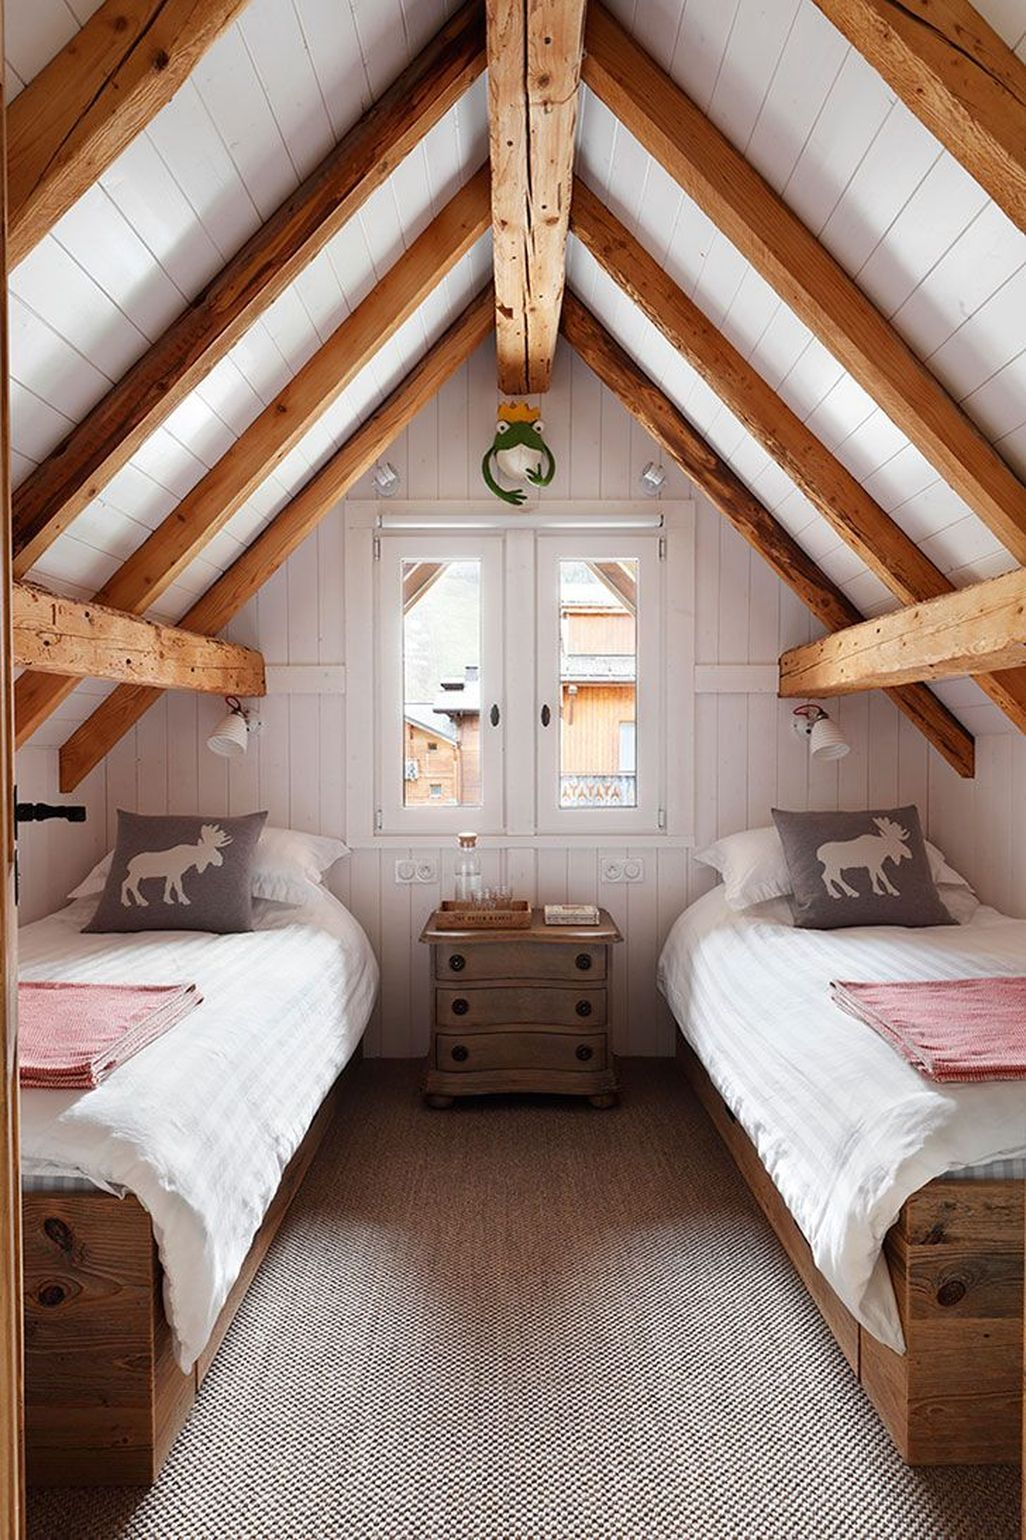 42 Unique Wooden Attic Ideas Attic Bedroom Designs Rustic Home